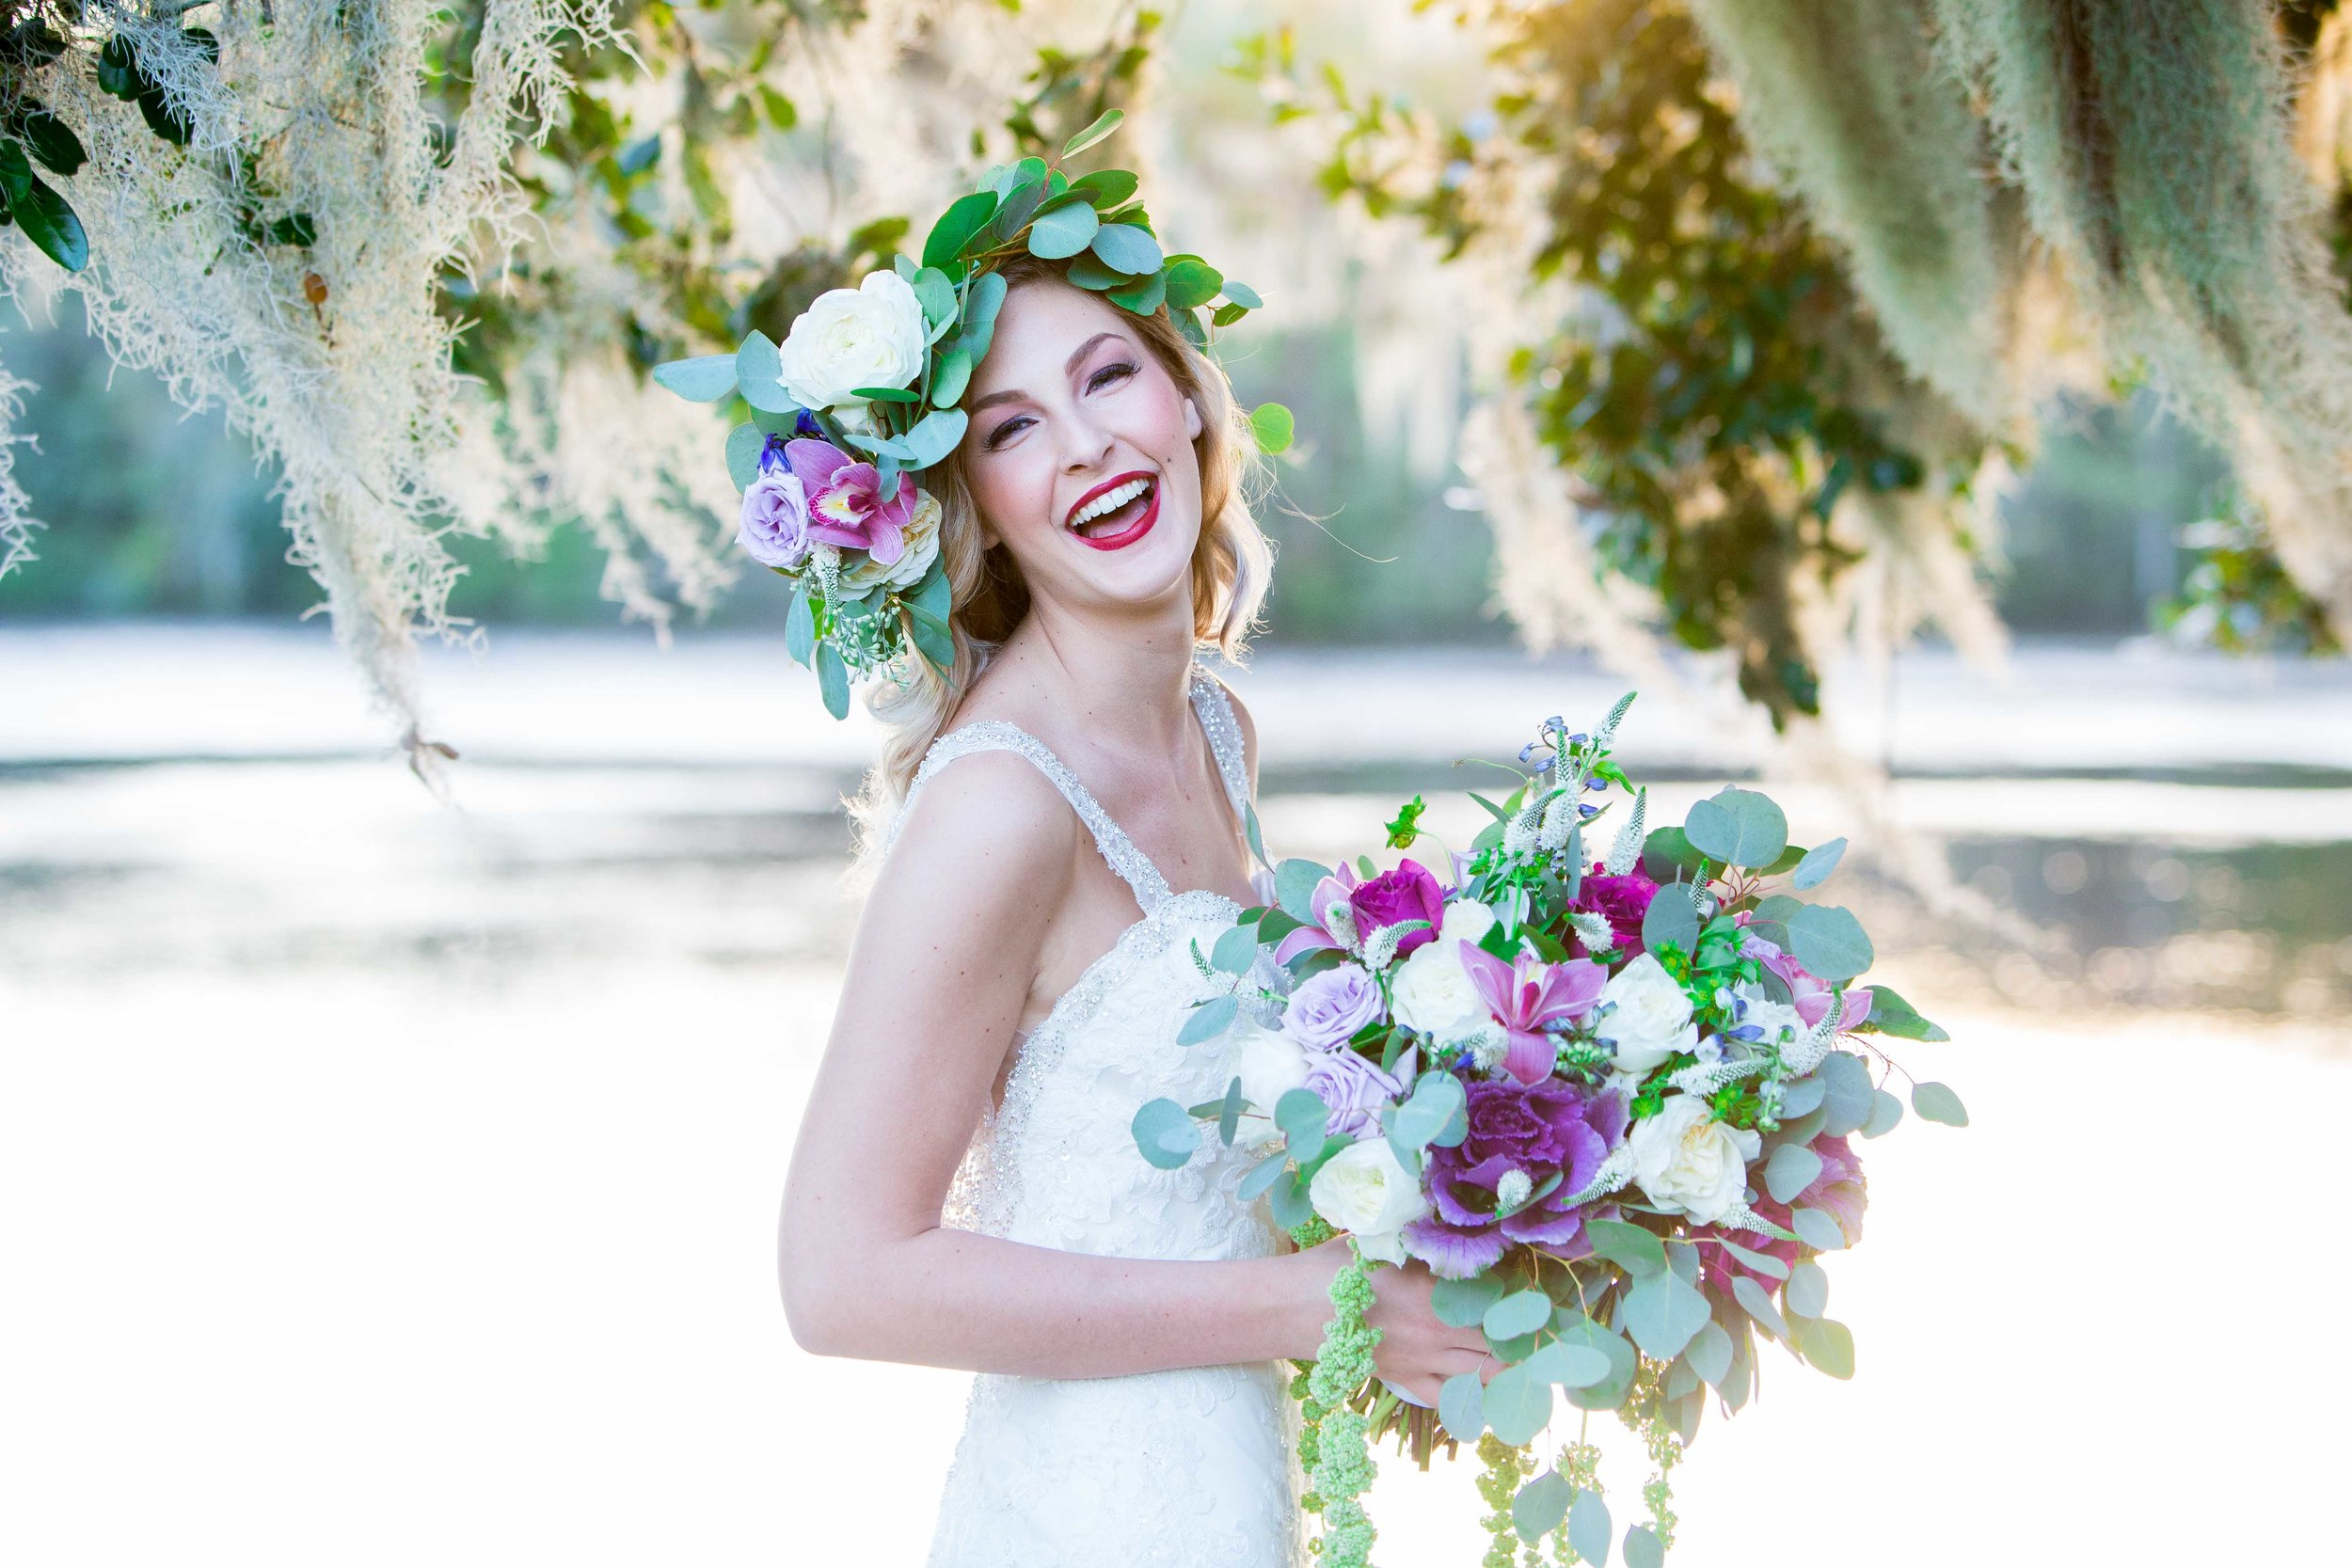 Wedding Photography at Wachesaw Plantation with live oaks and Spanish moss